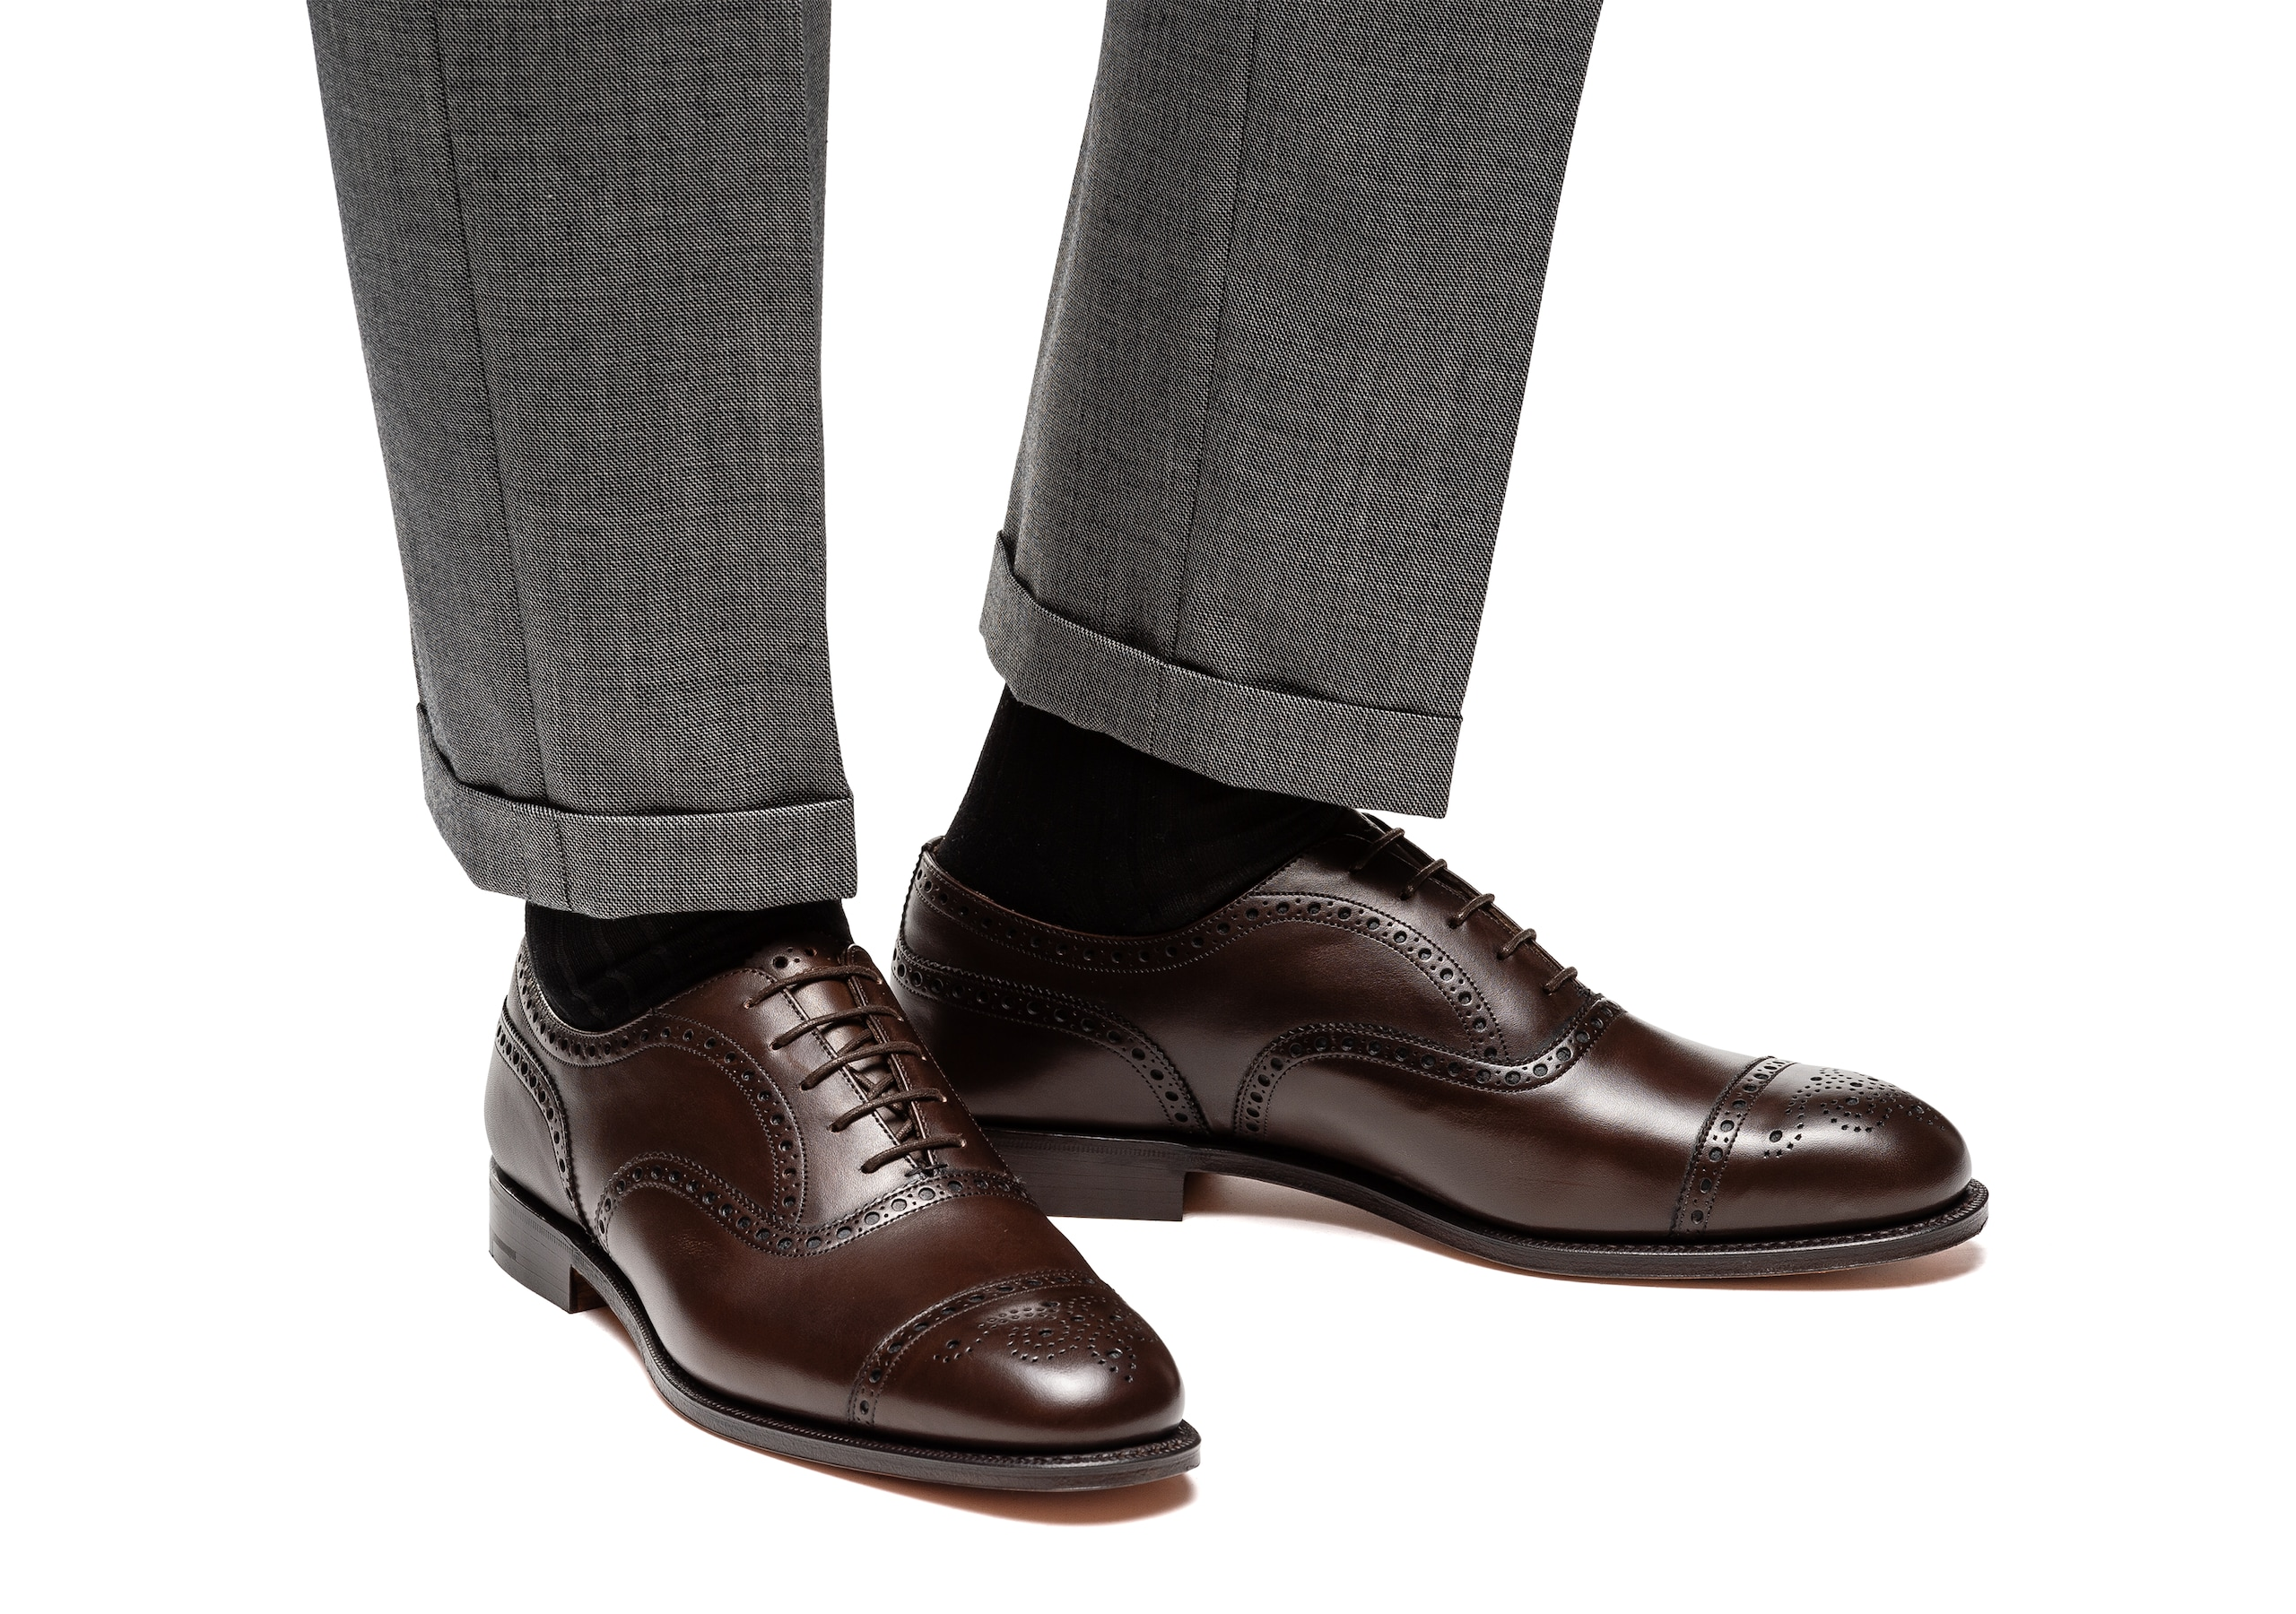 Diplomat 173 Church's Nevada Leather Oxford Brogue Brown